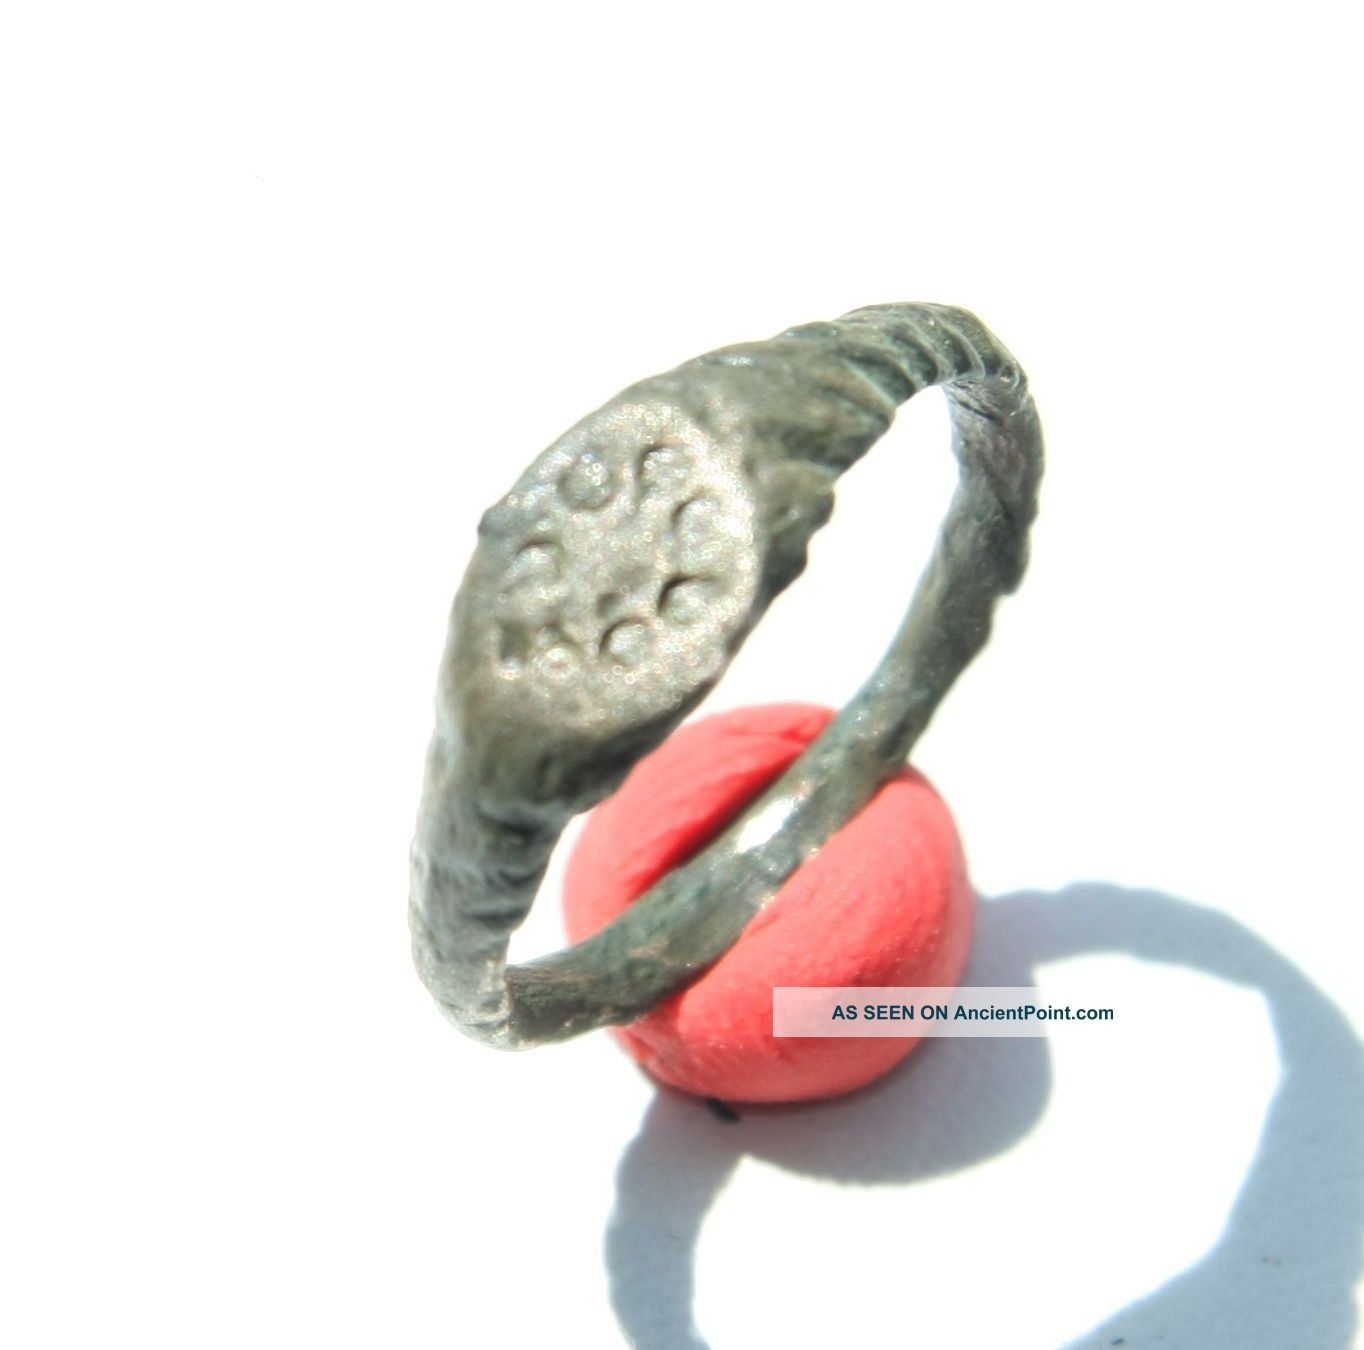 Antique Bronze Finger Ring With Image (jjj04) Byzantine photo